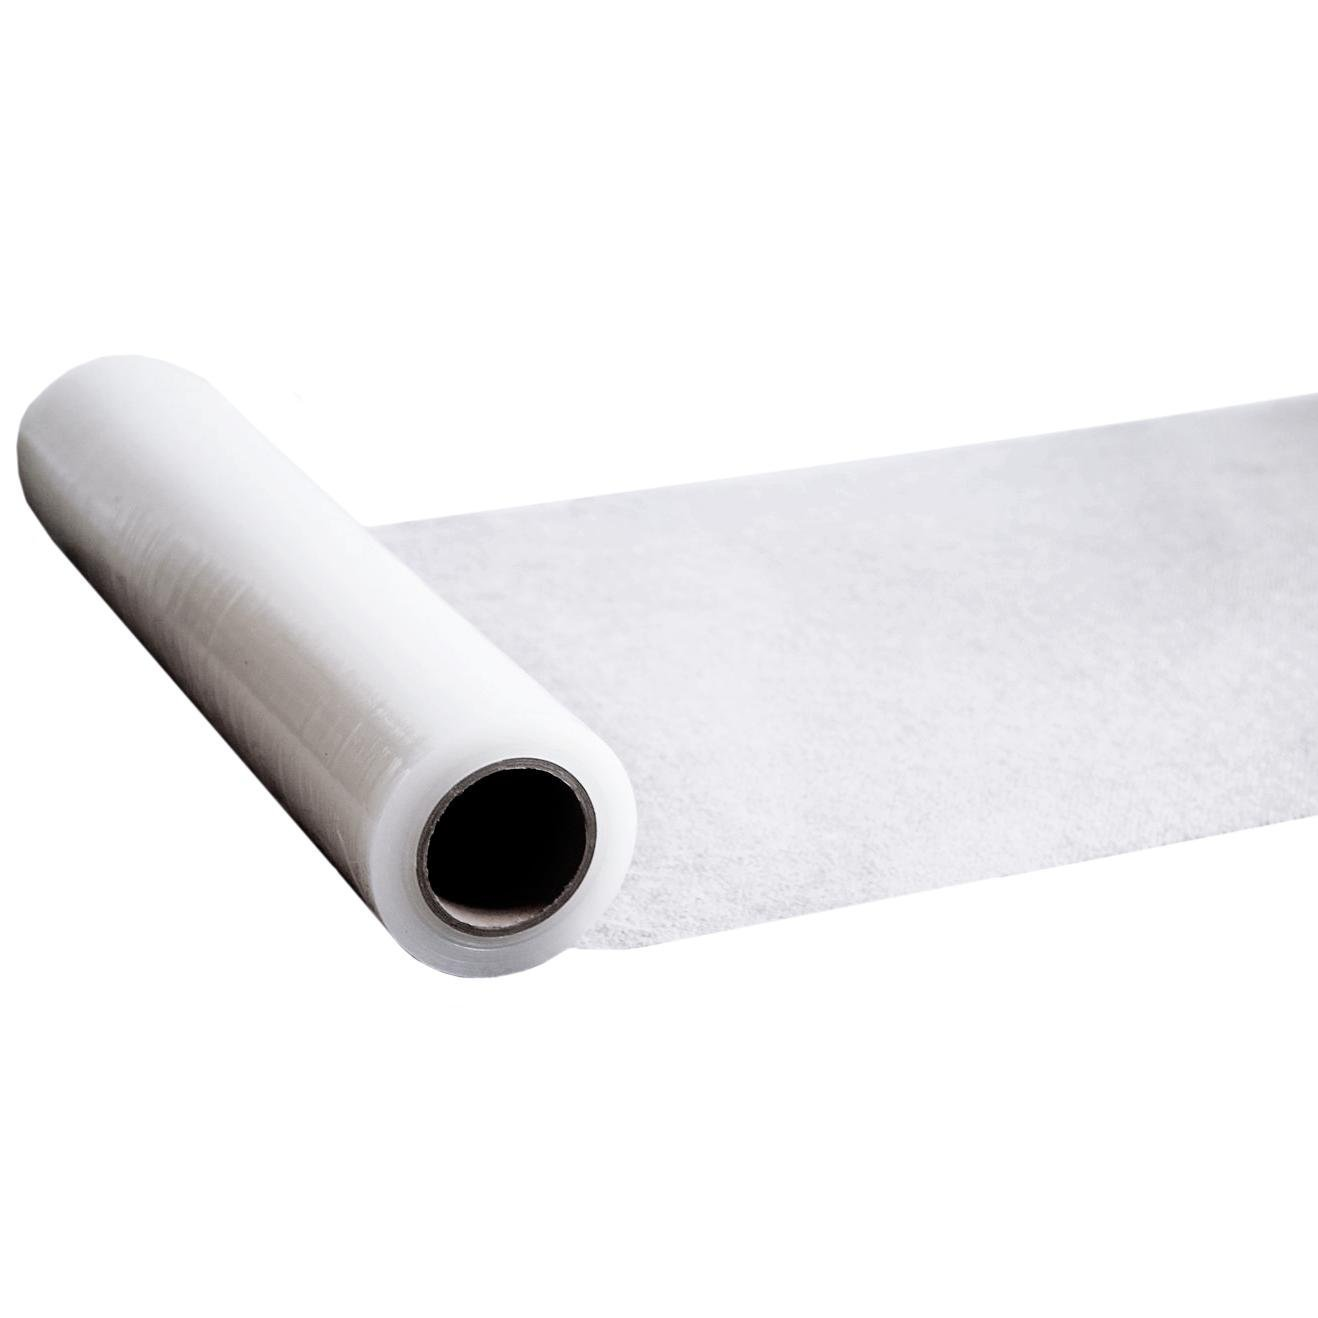 Protecta Carpet Clear 600mm x 100M (60MU) - Home - DIY